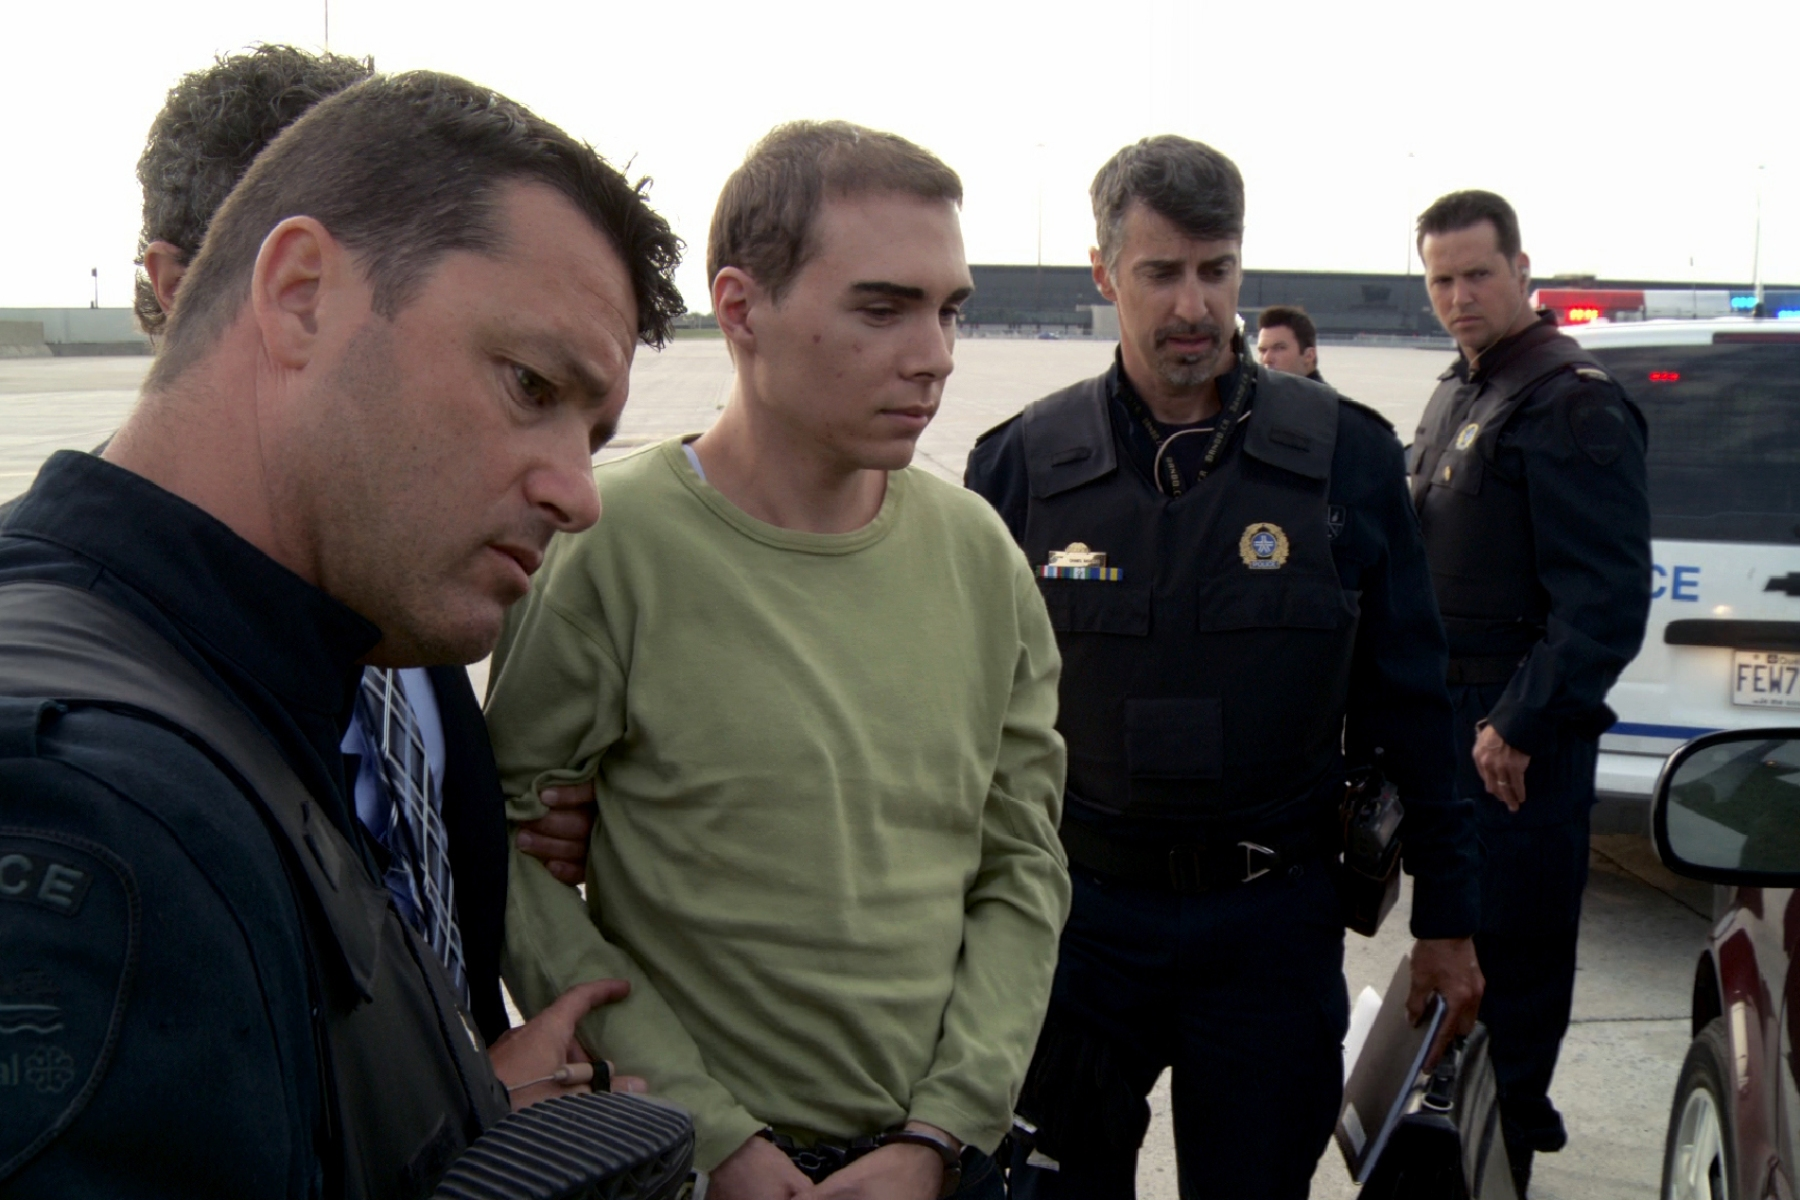 How Online Animal Rights Activists Helped Catch Luka Magnotta